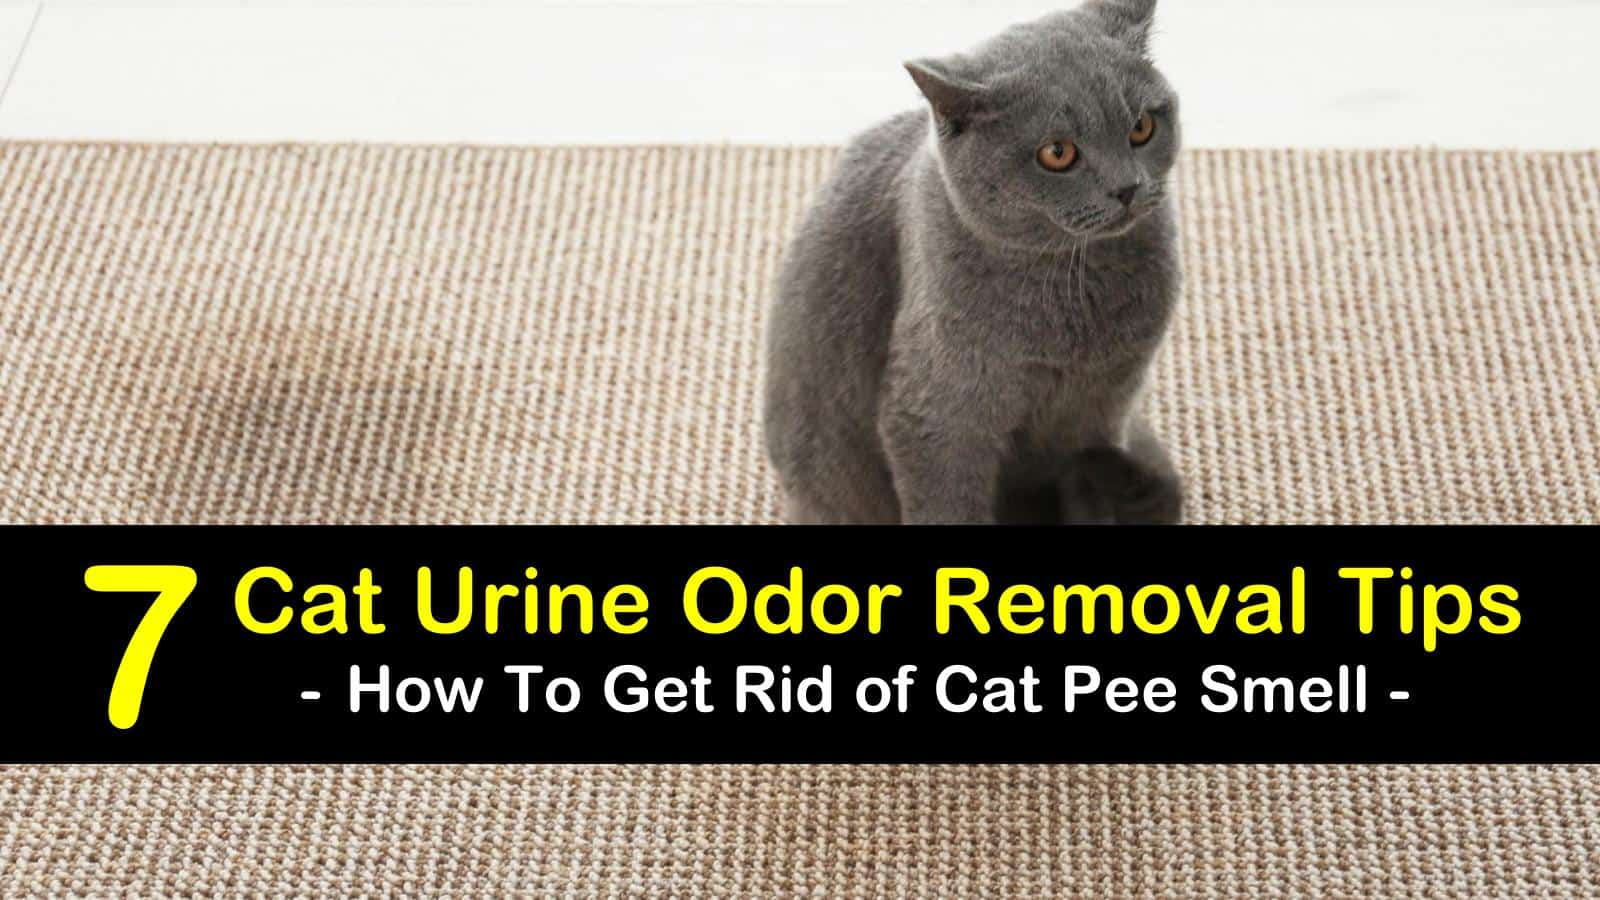 7 simple ways to get rid of cat pee smell